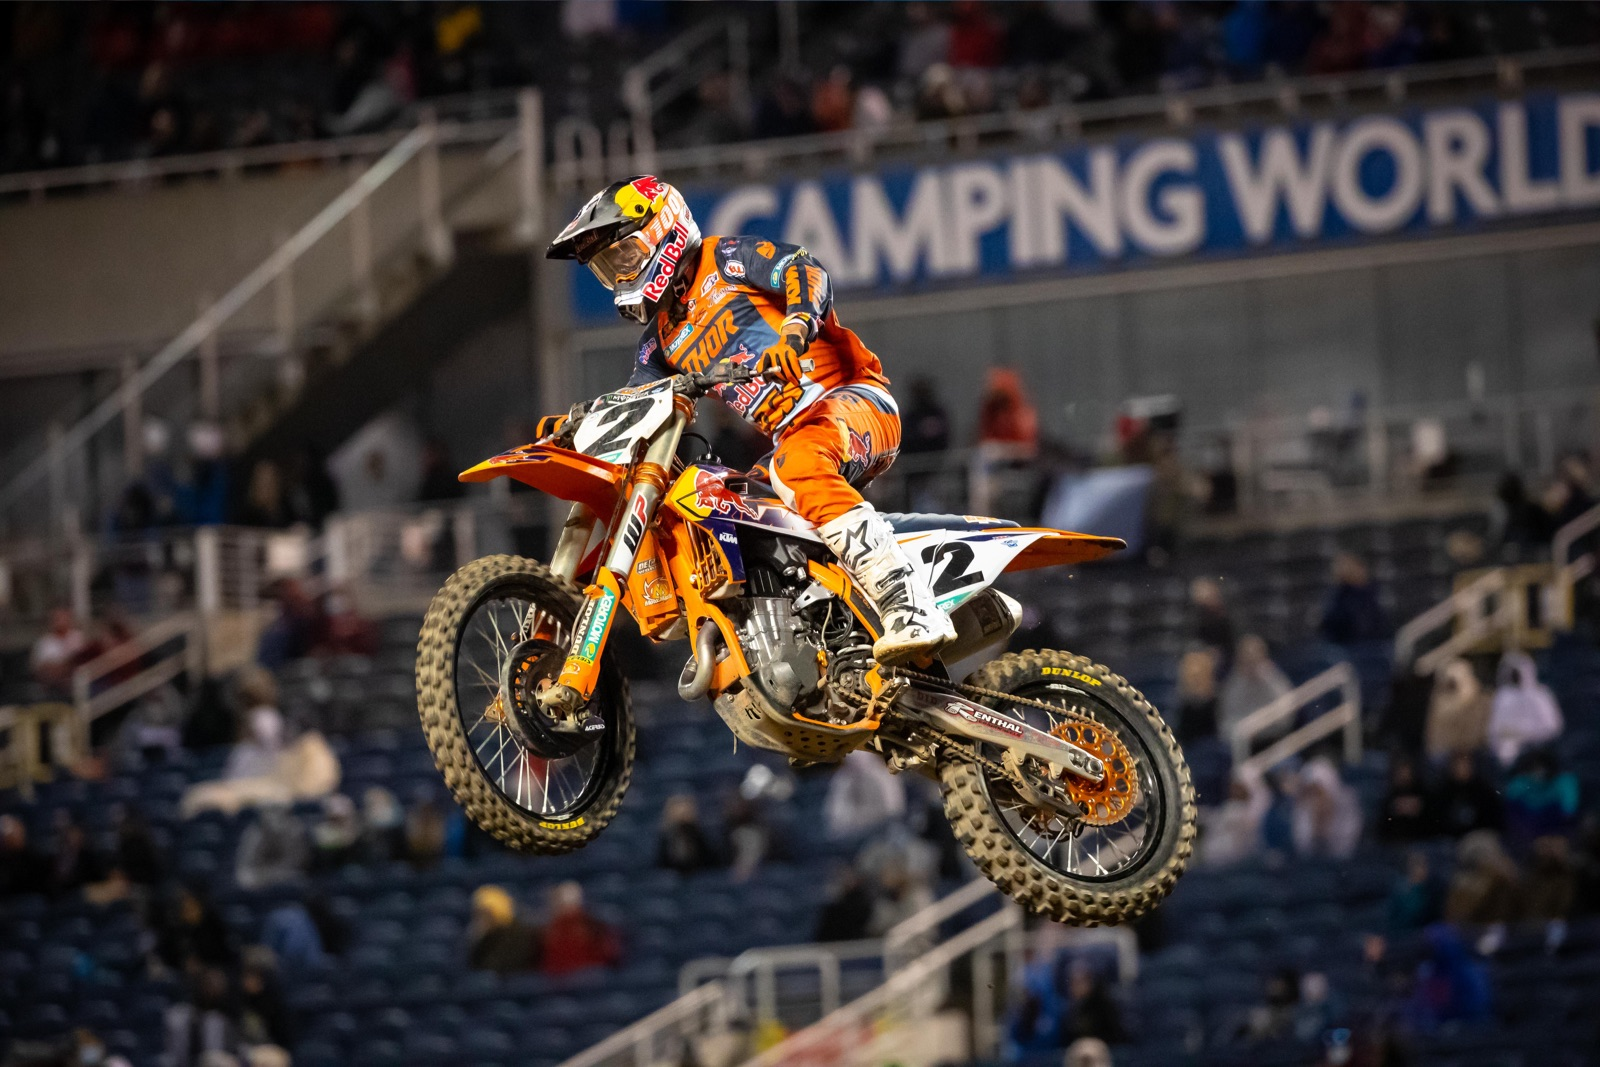 Cooper Webb's speed and determination nabbed him another win